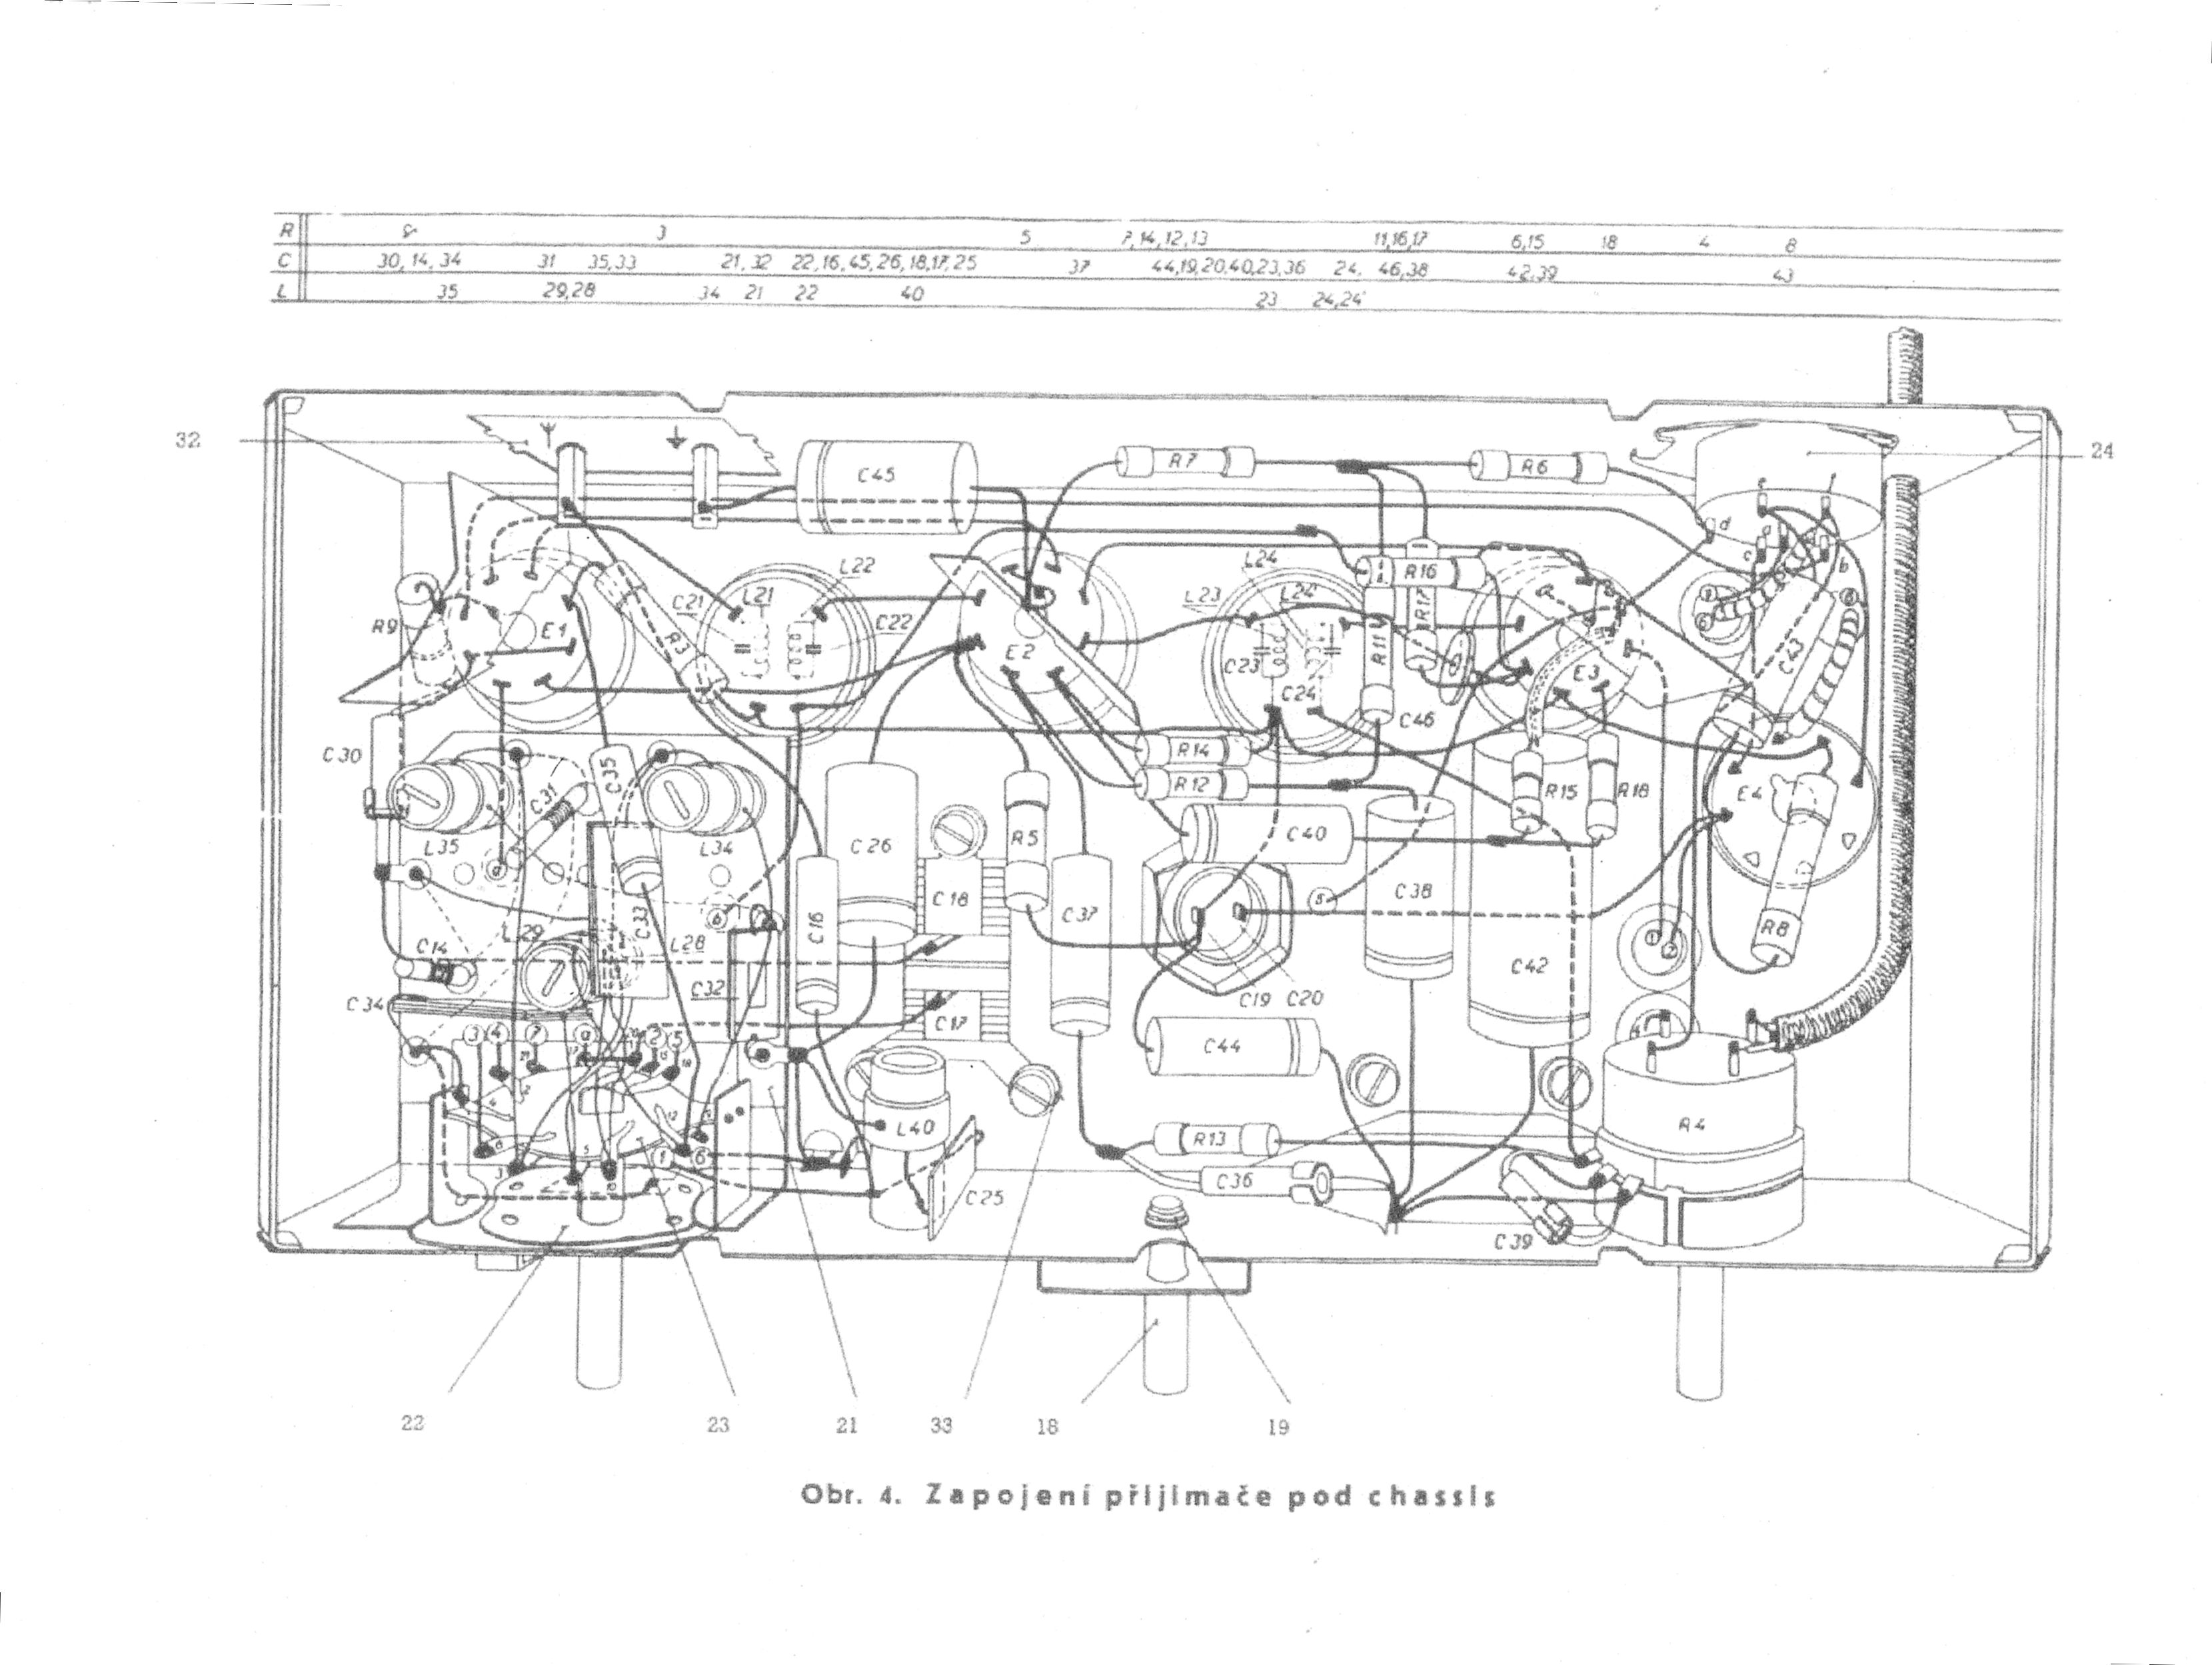 Tesla Wiring Diagrams Diagram Schemes Dyna Ignition Coils Model 308u Talisman Radio 1956 Rh Antiqueradio Org S Schematic Coil